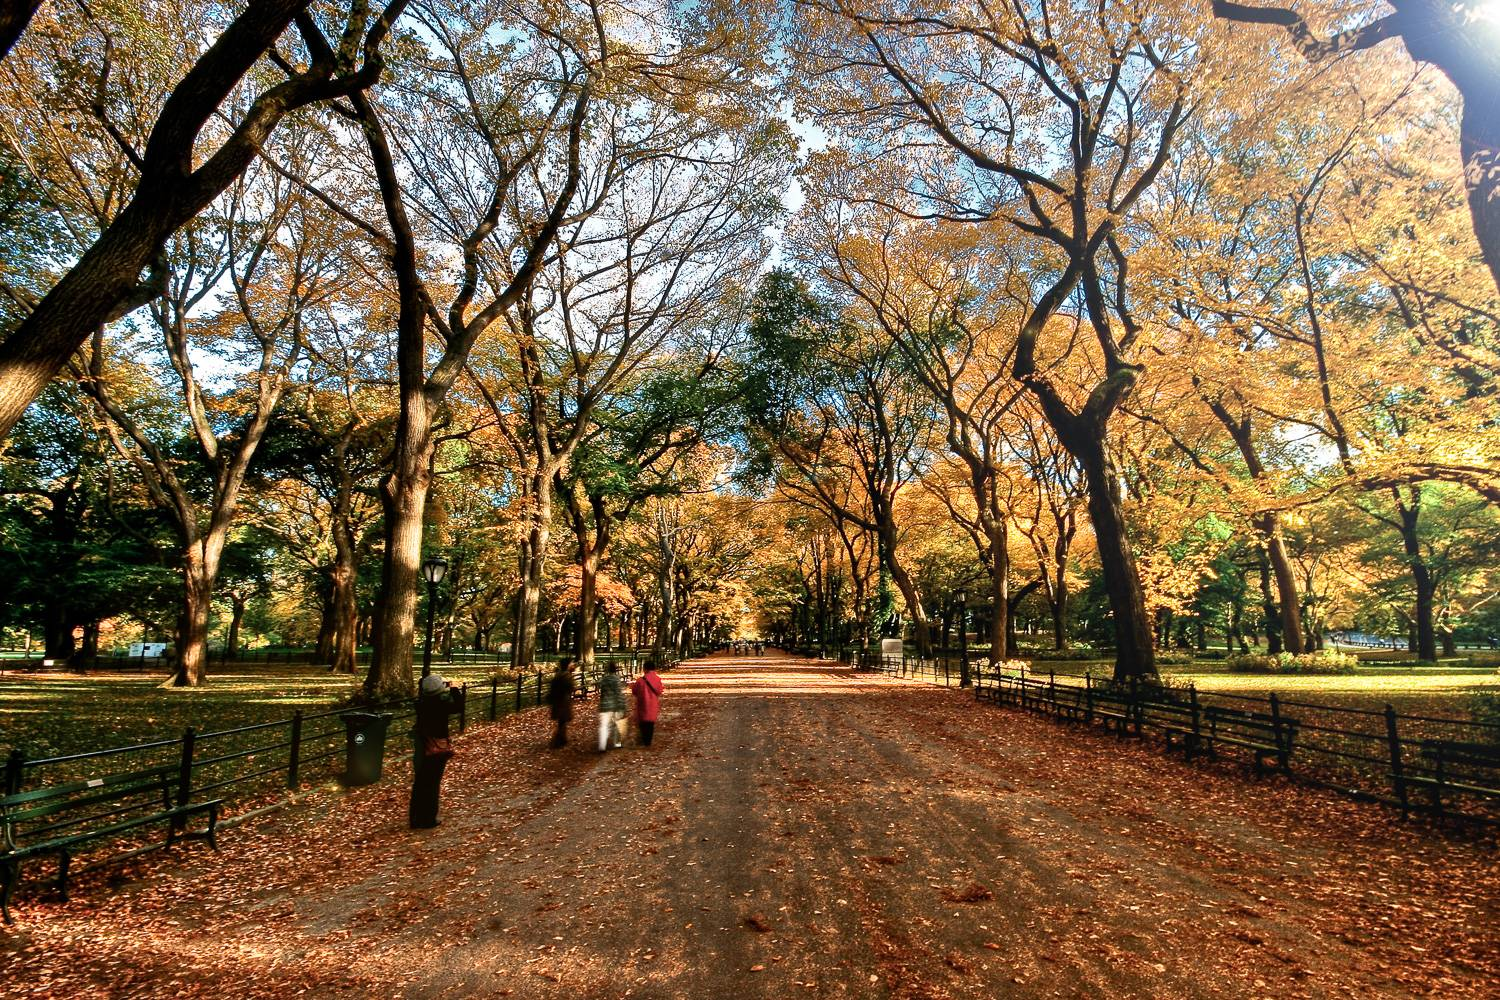 Image of the mall footpath in Central Park framed by trees with autumn leaves.